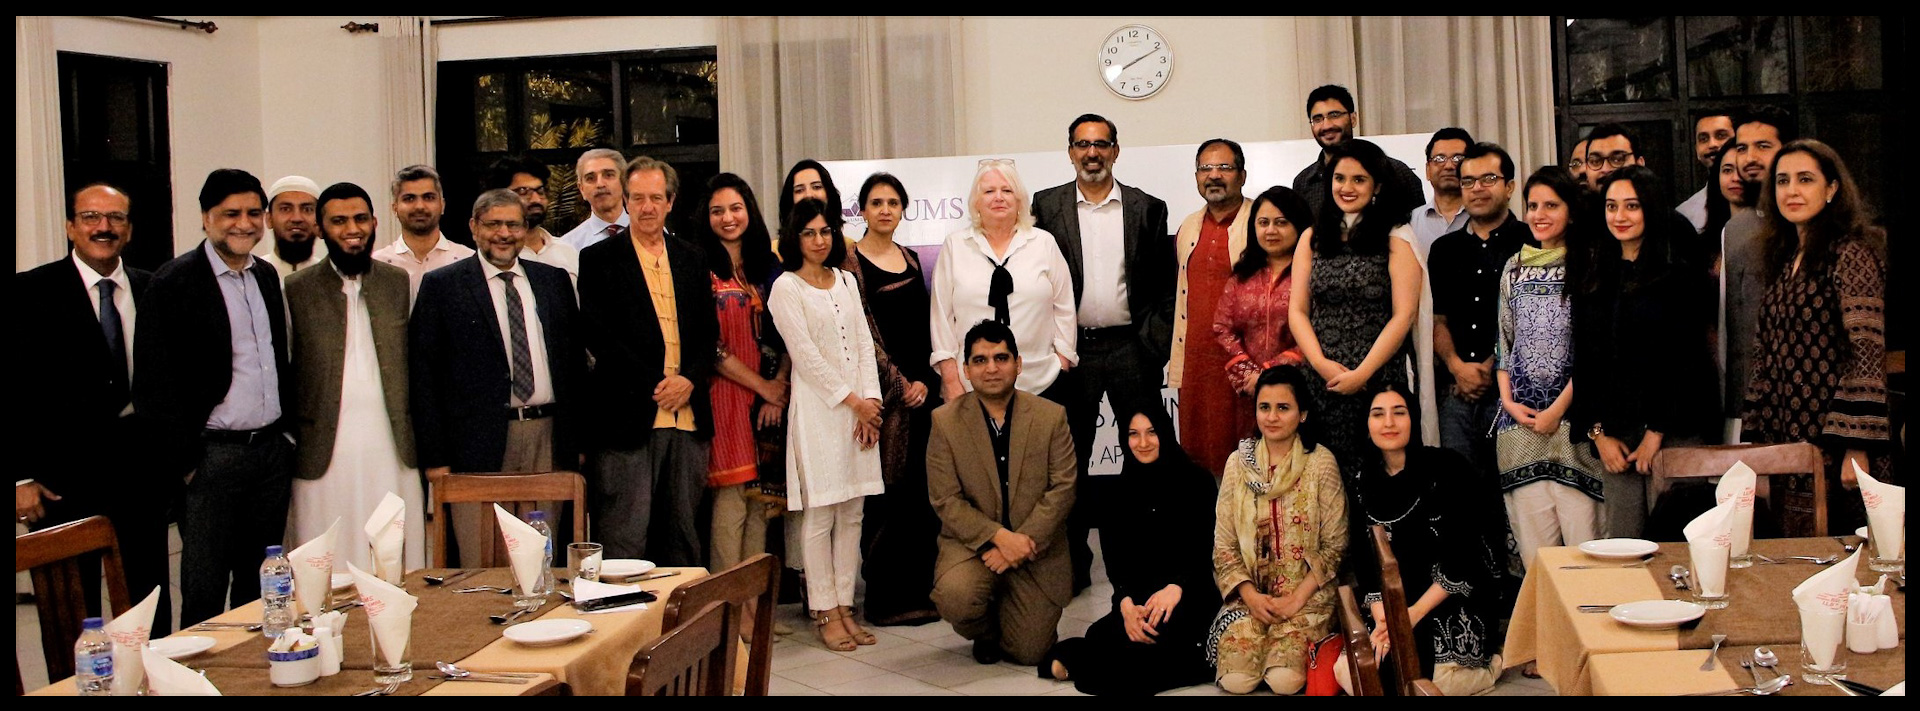 The Fulbright - LUMS alumni dinner celebrated alumni from LUMS who won the Fulbright award